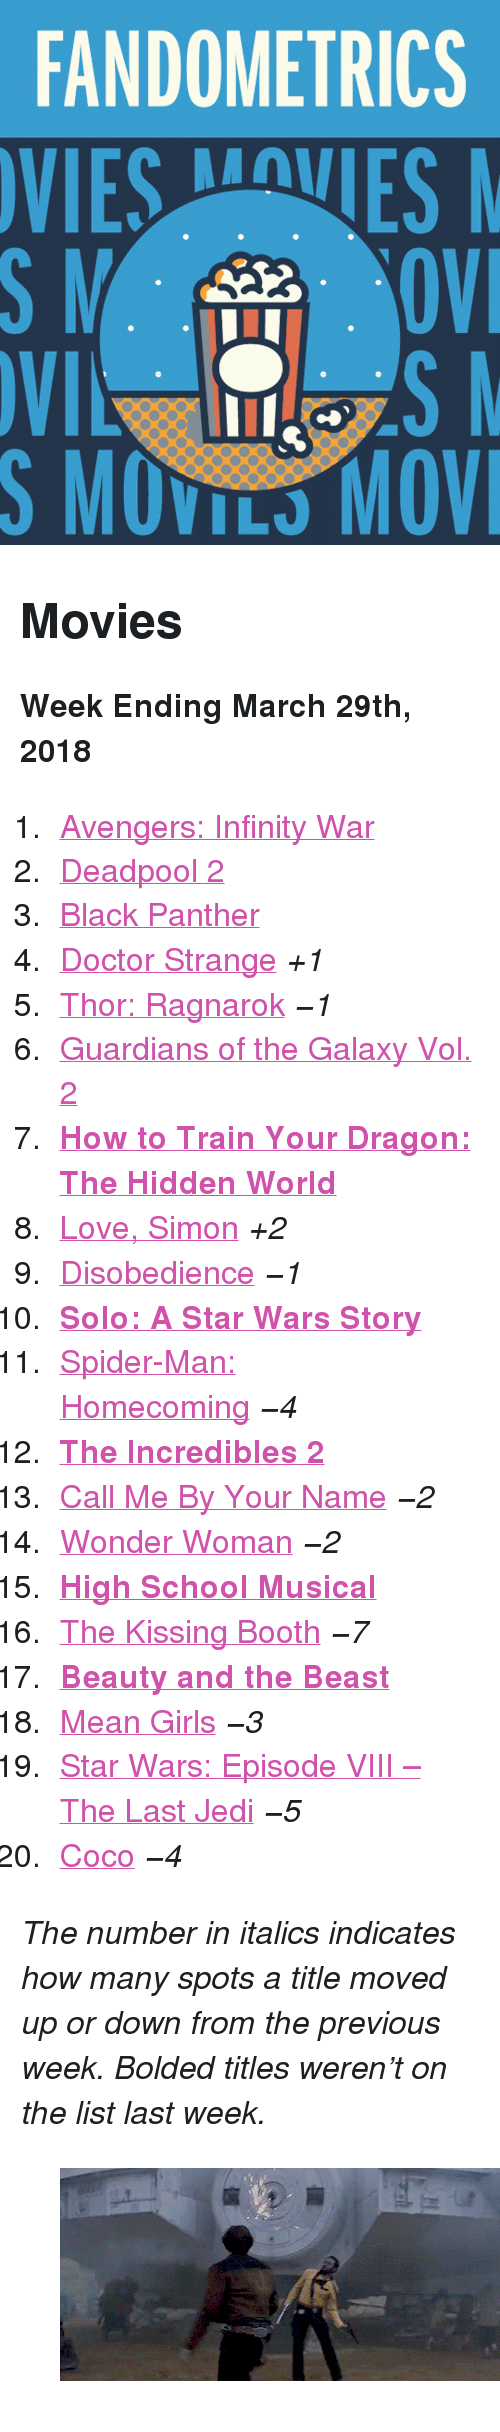 "Mean Girls: FANDOMETRICS  SMOVILS MOV <h2>Movies</h2><p><b>Week Ending March 29th, 2018</b></p><ol><li><a href=""http://www.tumblr.com/search/infinity%20war"">Avengers: Infinity War</a></li>  <li><a href=""http://www.tumblr.com/search/deadpool"">Deadpool 2</a></li>  <li><a href=""http://www.tumblr.com/search/black%20panther"">Black Panther</a></li>  <li><a href=""http://www.tumblr.com/search/doctor%20strange"">Doctor Strange</a> <i>+1 </i></li>  <li><a href=""http://www.tumblr.com/search/thor%20ragnarok"">Thor: Ragnarok</a> <i><i>−1</i></i></li>  <li><a href=""http://www.tumblr.com/search/guardians%20of%20the%20galaxy"">Guardians of the Galaxy Vol. 2</a></li>  <li><a href=""http://www.tumblr.com/search/httyd%203""><b>How to Train Your Dragon: The Hidden World</b></a></li>  <li><a href=""http://www.tumblr.com/search/love%20simon"">Love, Simon</a> <i>+2</i></li>  <li><a href=""http://www.tumblr.com/search/disobedience"">Disobedience</a> <i><i>−1</i></i></li>  <li><a href=""http://www.tumblr.com/search/solo%20a%20star%20wars%20story""><b>Solo: A Star Wars Story</b></a></li>  <li><a href=""http://www.tumblr.com/search/spiderman%20homecoming"">Spider-Man: Homecoming</a> <i><i>−4</i></i></li>  <li><a href=""http://www.tumblr.com/search/the%20incredibles""><b>The Incredibles 2</b></a></li>  <li><a href=""http://www.tumblr.com/search/call%20me%20by%20your%20name"">Call Me By Your Name</a> <i><i>−2</i></i></li>  <li><a href=""http://www.tumblr.com/search/wonder%20woman"">Wonder Woman</a> <i><i>−2</i></i></li>  <li><a href=""http://www.tumblr.com/search/high%20school%20musical""><b>High School Musical</b></a></li>  <li><a href=""http://www.tumblr.com/search/the%20kissing%20booth"">The Kissing Booth</a> <i><i>−7</i></i></li>  <li><a href=""http://www.tumblr.com/search/beauty%20and%20the%20beast""><b>Beauty and the Beast</b></a></li>  <li><a href=""http://www.tumblr.com/search/mean%20girls"">Mean Girls</a> <i><i>−3</i></i></li>  <li><a href=""http://www.tumblr.com/search/the%20last%20jedi"">Star Wars: Episode VIII – The Last Jedi</a> <i><i>−5</i></i></li>  <li><a href=""http://www.tumblr.com/search/coco"">Coco</a> <i><i>−4</i></i></li></ol><p><i>The number in italics indicates how many spots a title moved up or down from the previous week. Bolded titles weren't on the list last week.</i></p><figure class=""tmblr-full pinned-target"" data-orig-height=""259"" data-orig-width=""500"" data-tumblr-attribution=""captain-calrissian:WCLDTRV5_YXcrJlKbUBnQQ:ZAhHDr2X9gMPv""><img src=""https://78.media.tumblr.com/24321aa71b3de7614d442d50ccb4f723/tumblr_p7cbaoefXJ1saj50lo1_r1_500.gifv"" data-orig-height=""259"" data-orig-width=""500""/></figure>"